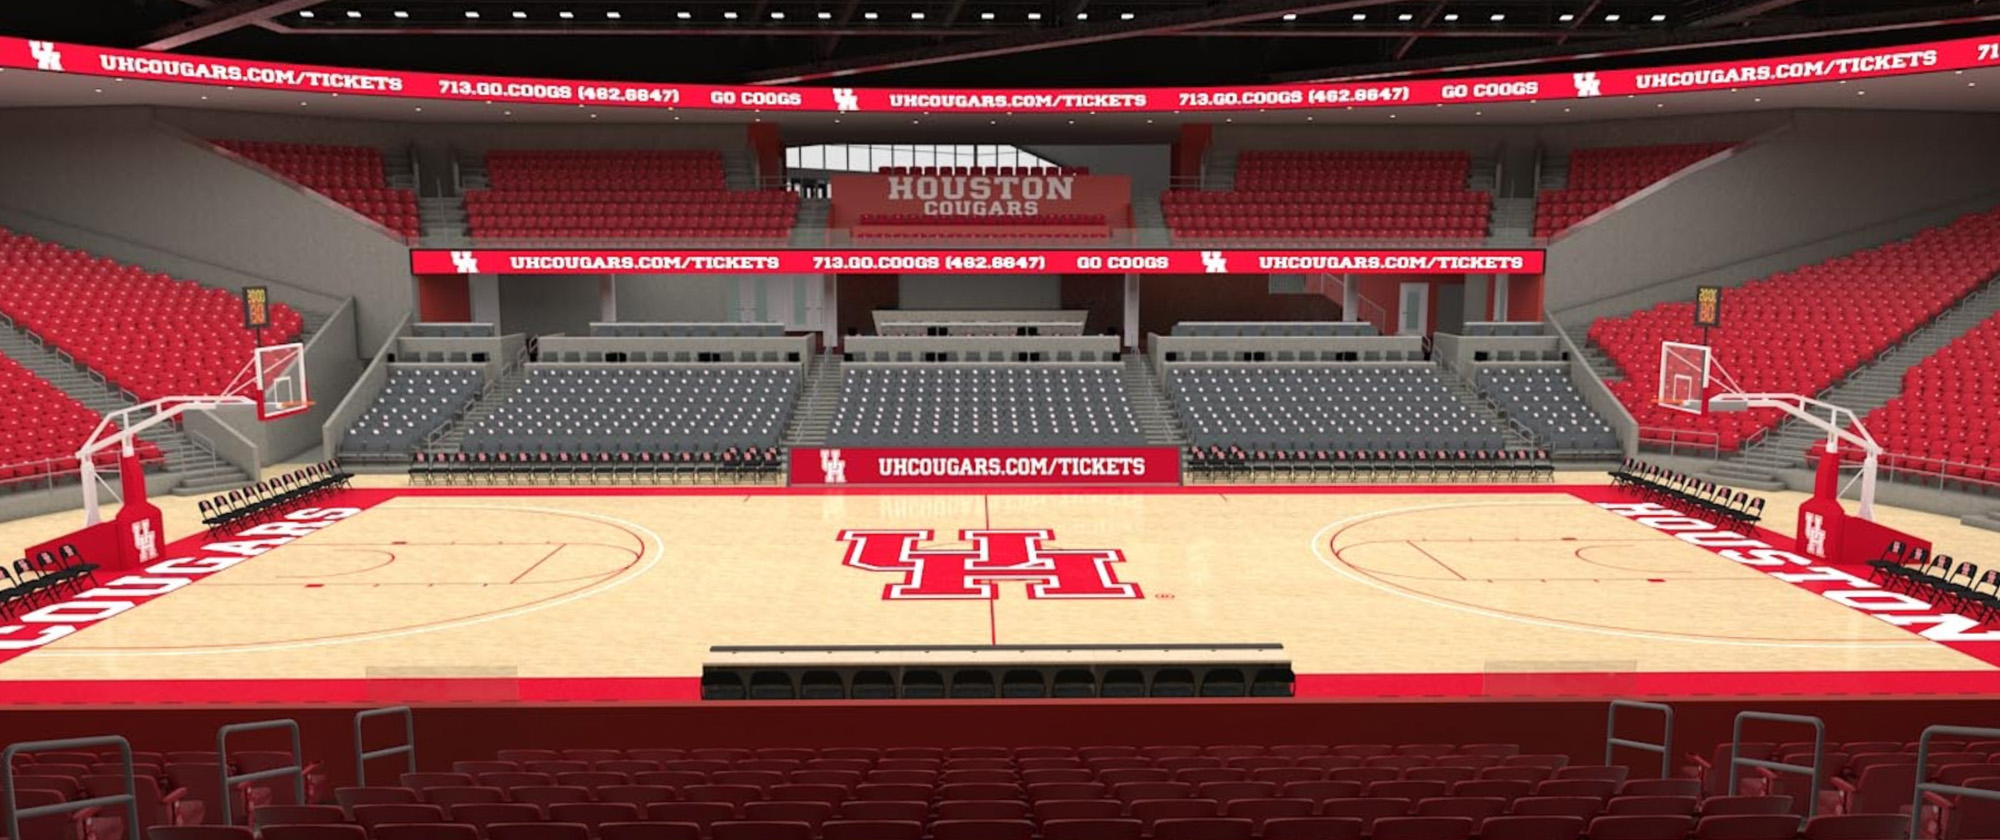 Fera Center 3D Map Unveiled - University of Houston ... on york college campus map, uhv campus map, main campus map, st campus map, va campus map, ul campus map, jd campus map, phoenix college campus map, uhd campus map, unh campus map, ge campus map, hawaii campus map, fh campus map, uhcl bayou building map, u of h map, ma campus map, uk campus map, honolulu community college campus map, morehead campus map, uw campus map,